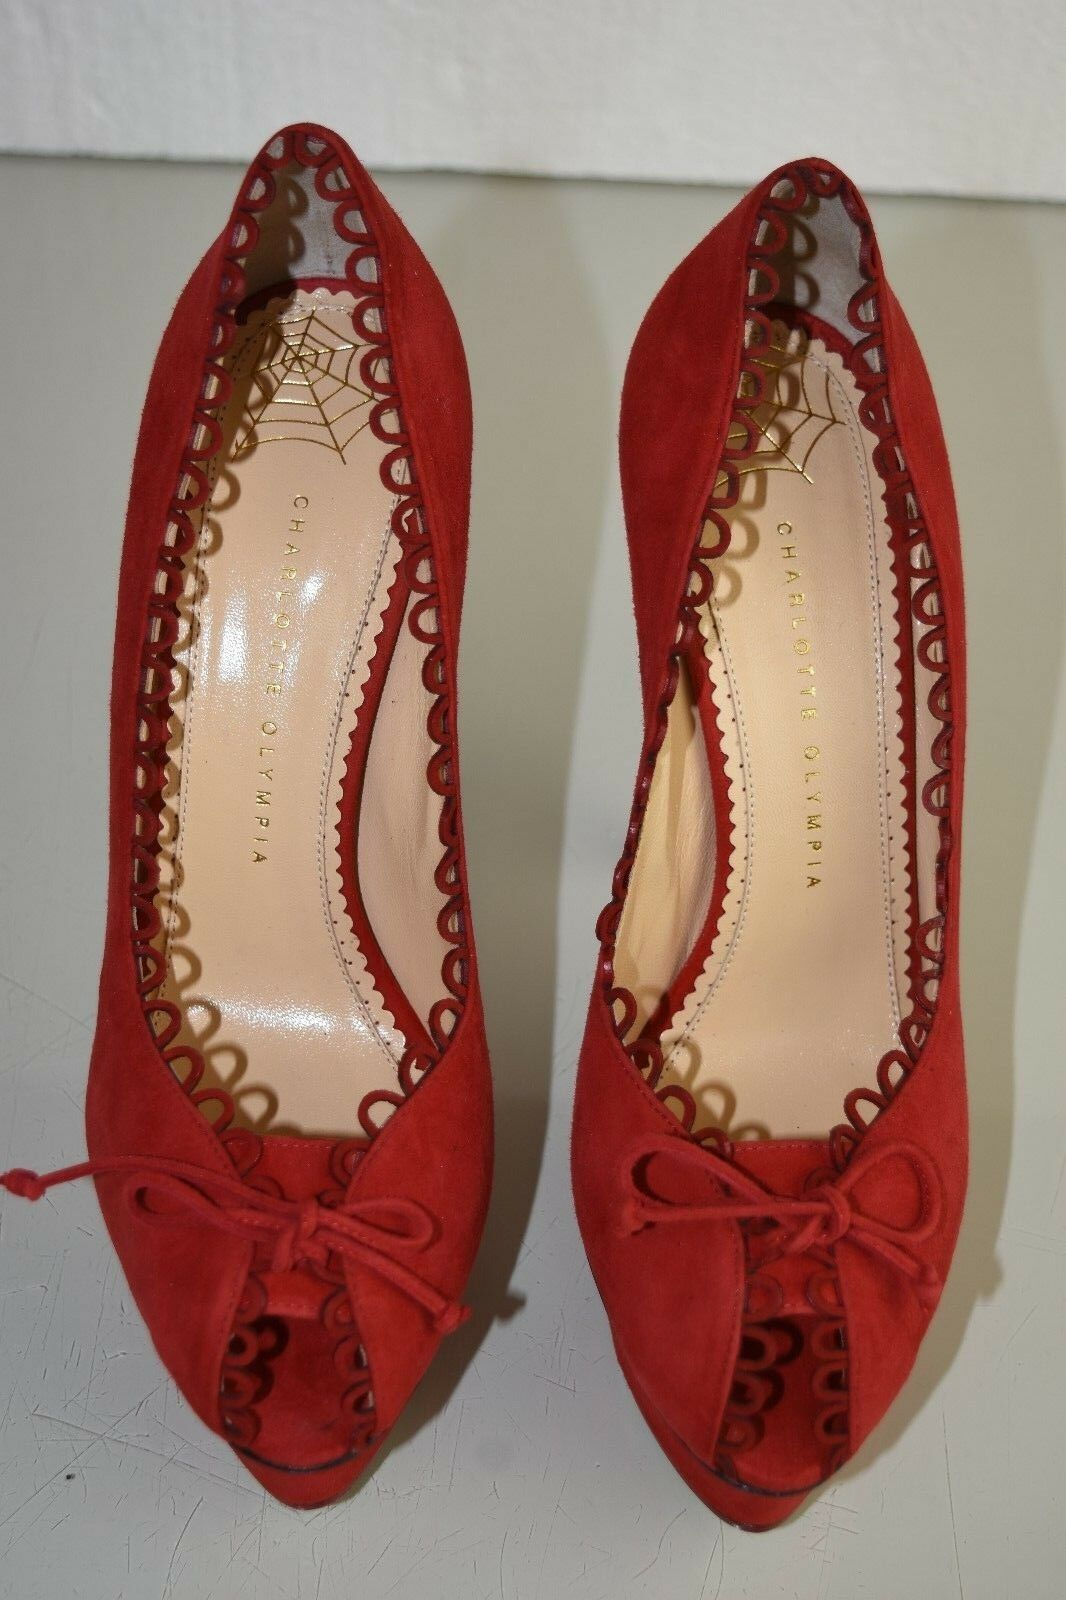 755 New Charlotte Olympia Platform DAPHNE Scalloped Suede Platform Olympia Pumps rot schuhe 39 41 c3f591